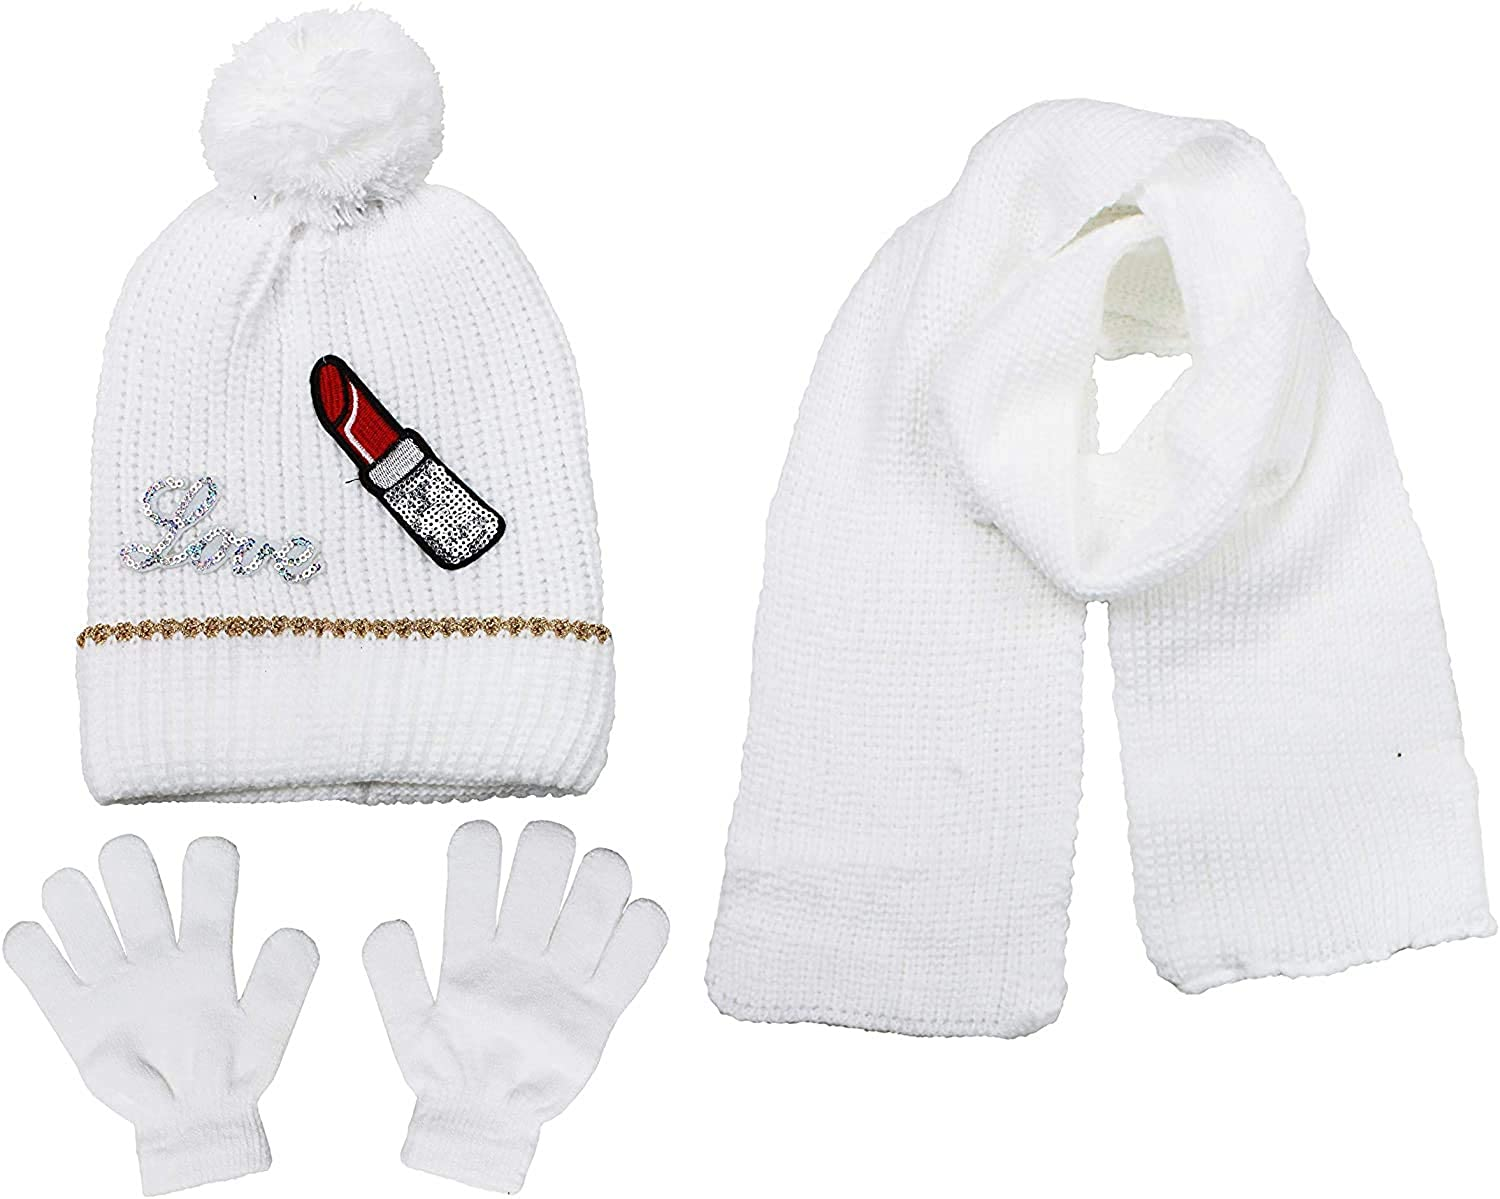 S.W.A.K Girls Knit Hat, Scarf And Gloves Set